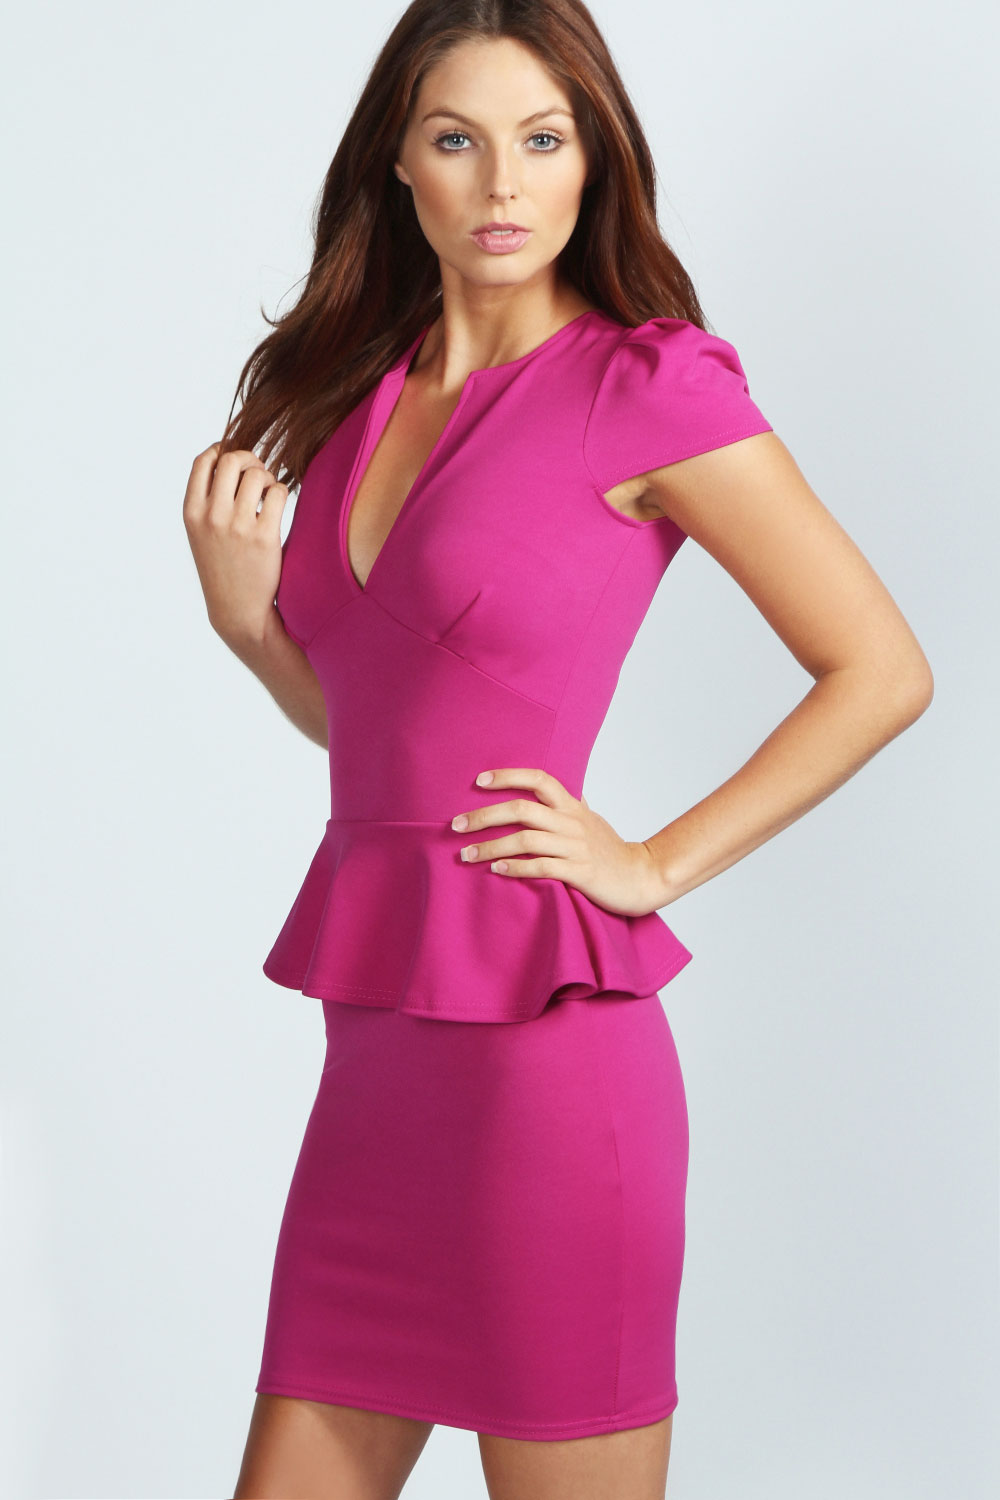 2014 Valentine's Day Dresses - Top Dress Trends To Follow